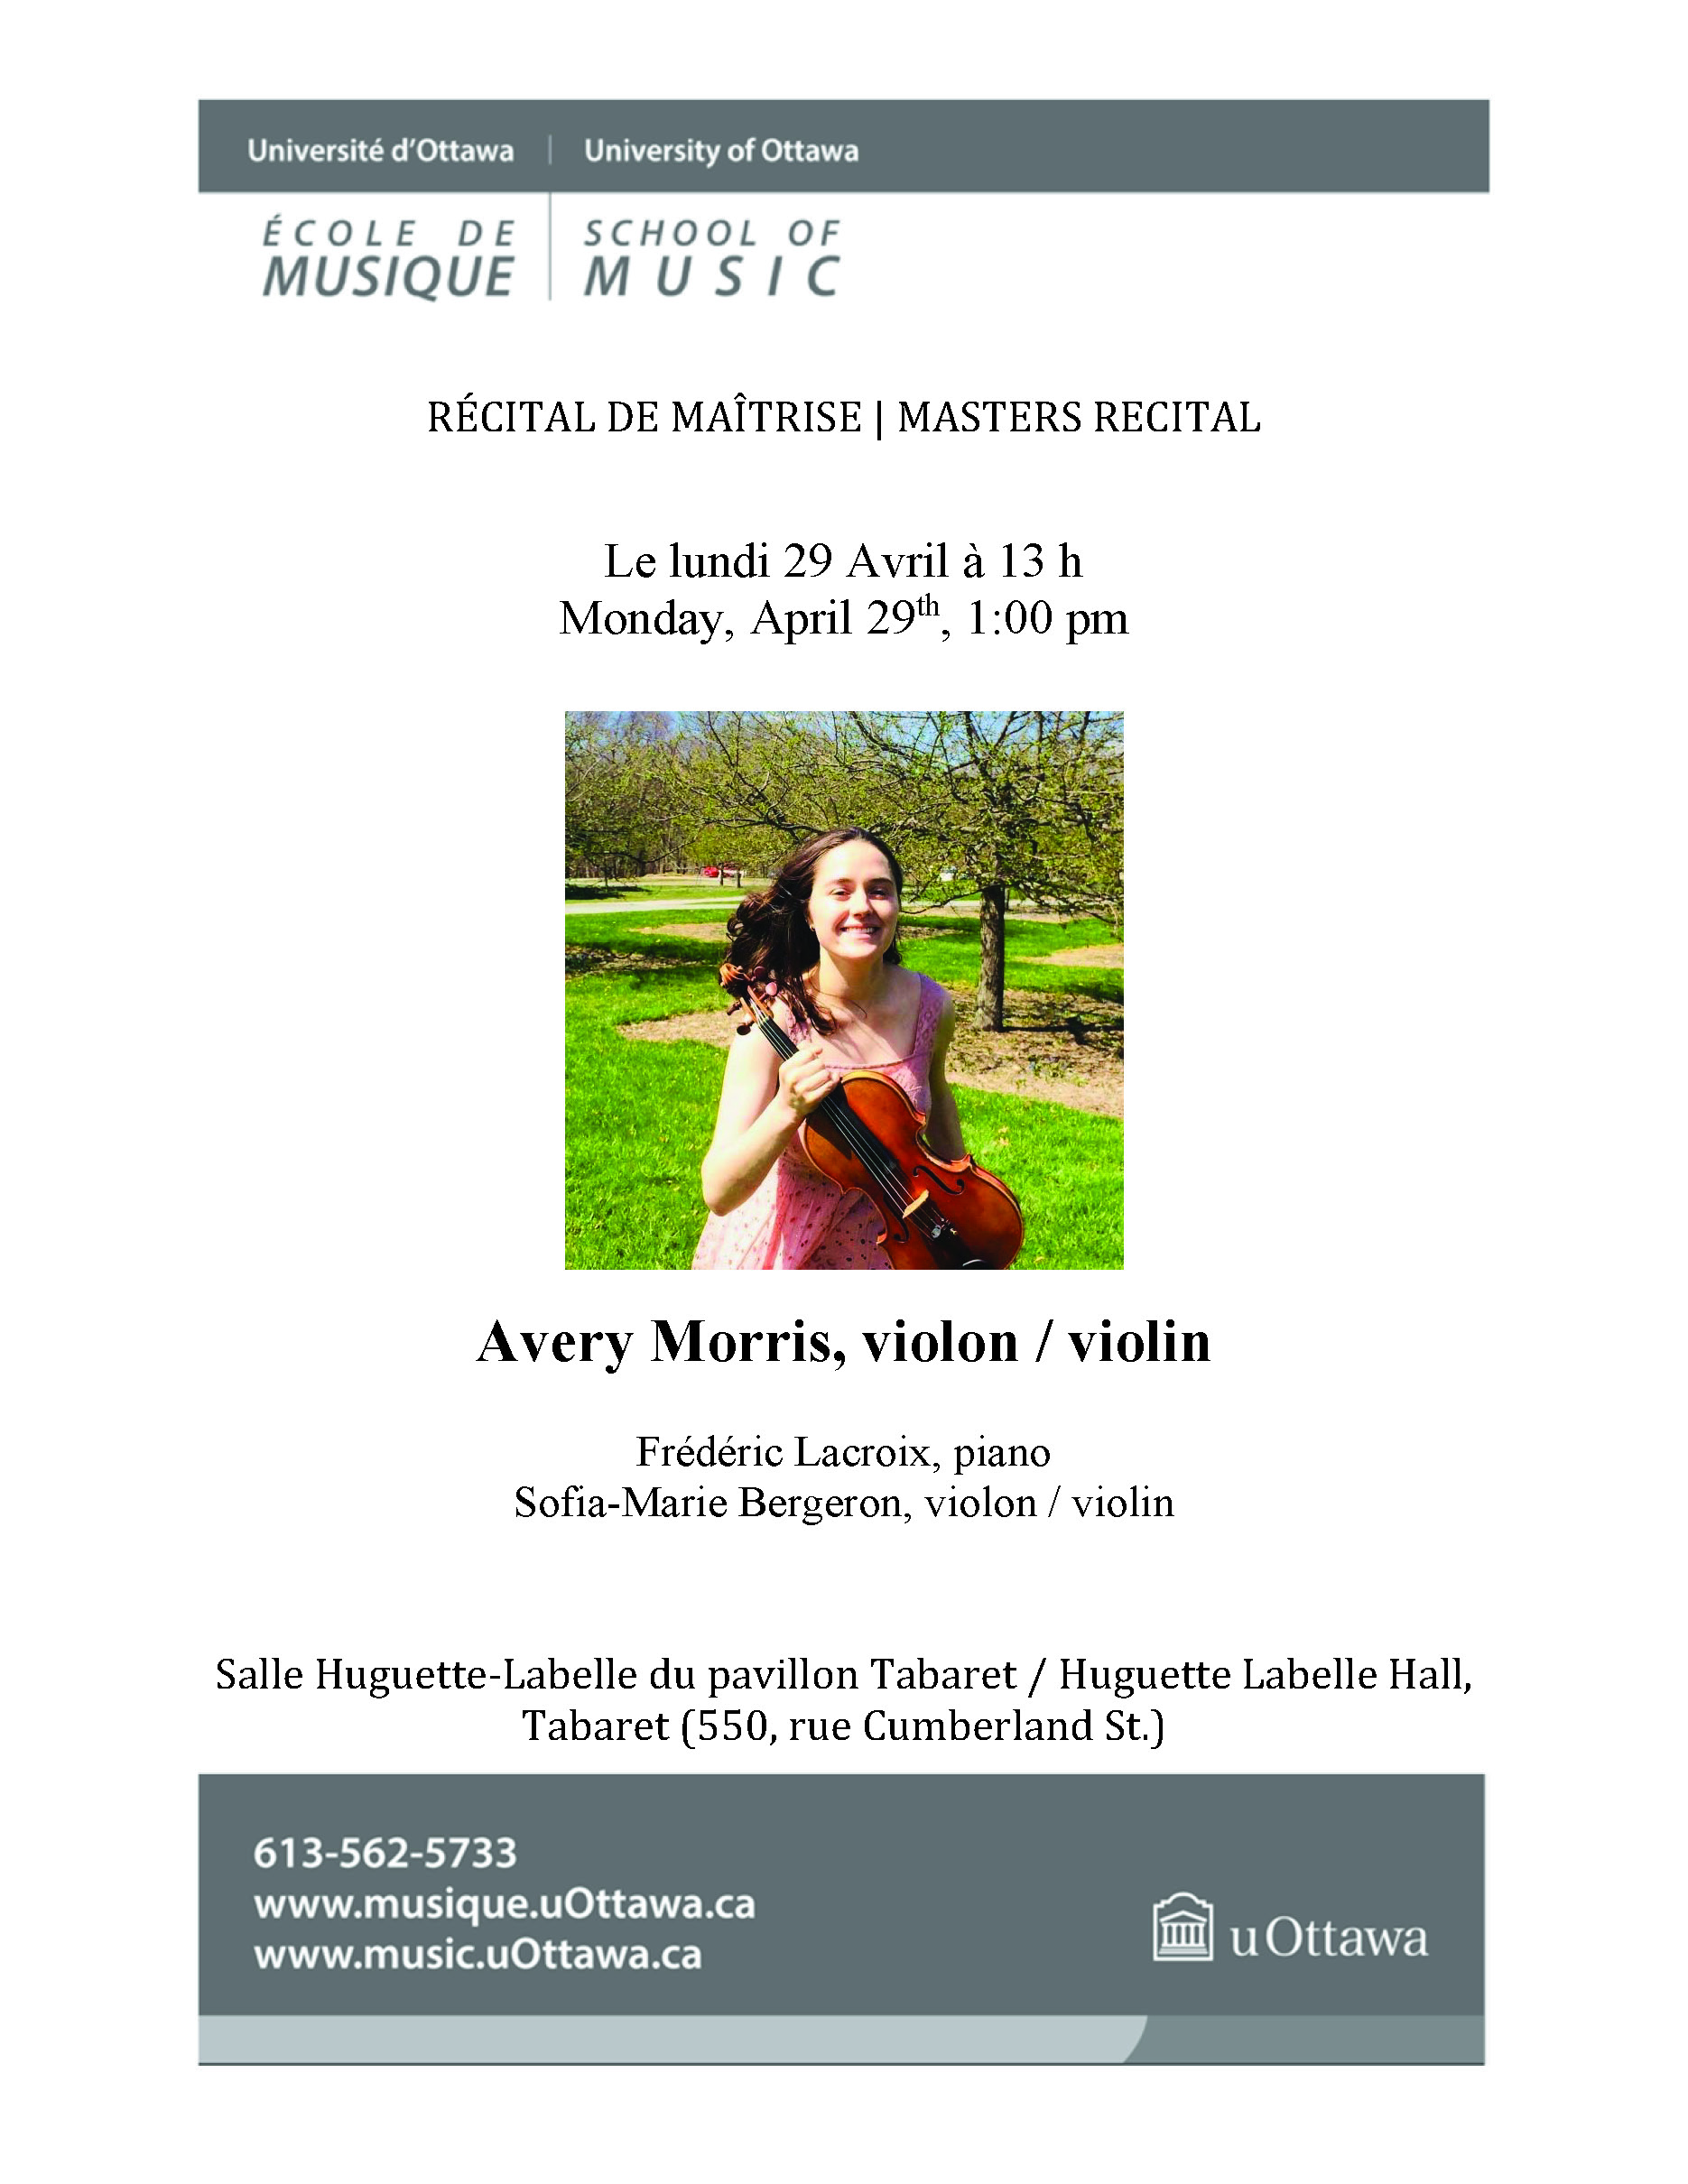 Recital Program of Avery Morris, page 1